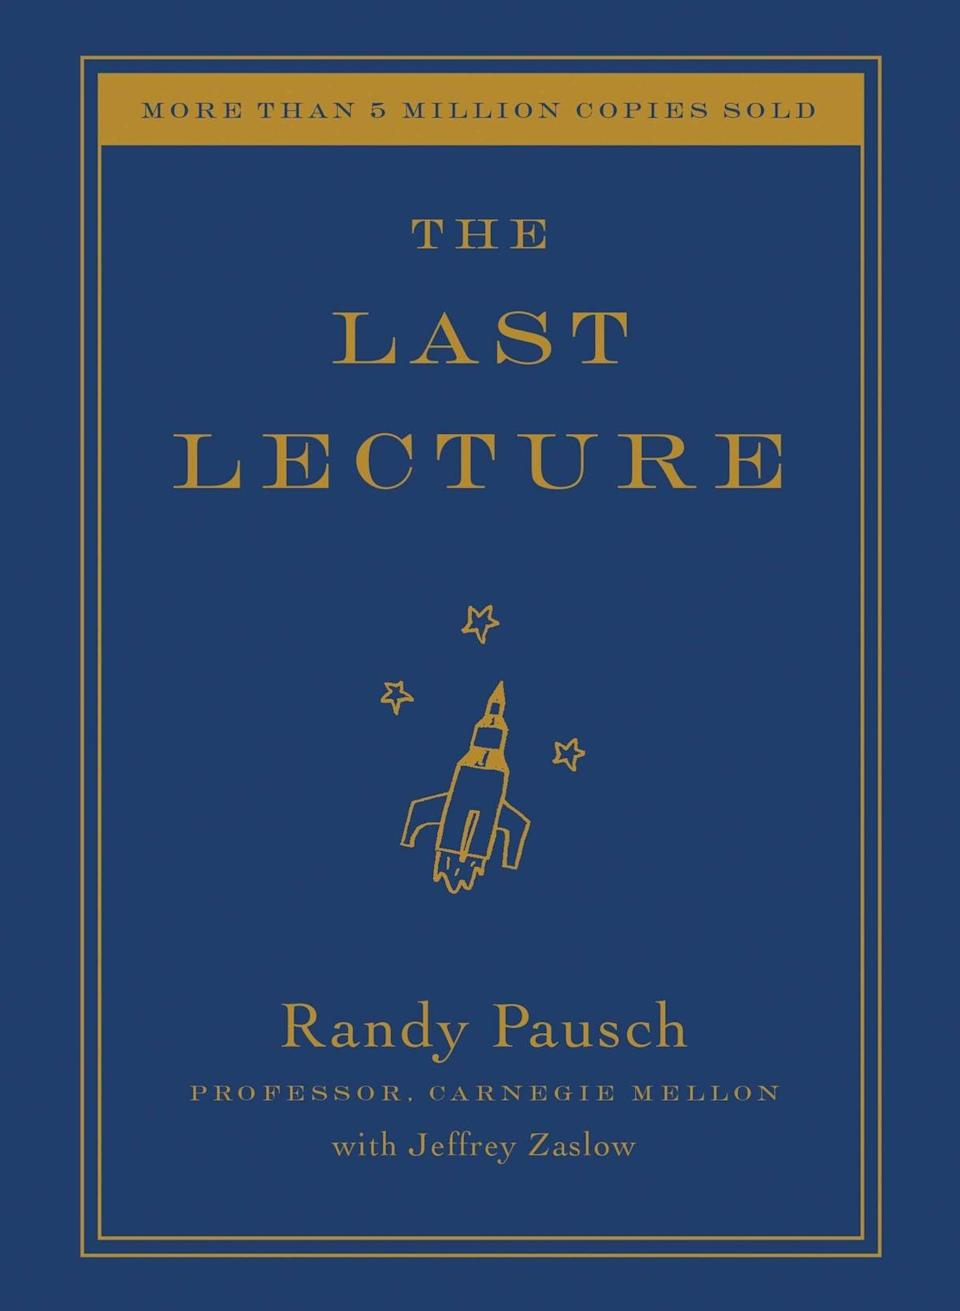 """<p><a href=""""https://www.amazon.com/Last-Lecture-Randy-Pausch/dp/1401323251"""" class=""""link rapid-noclick-resp"""" rel=""""nofollow noopener"""" target=""""_blank"""" data-ylk=""""slk:The Last Lecture""""><strong>The Last Lecture</strong></a> is a book written by a professor who managed to squeeze the most out of his final days after a terminal cancer diagnosis.</p>"""